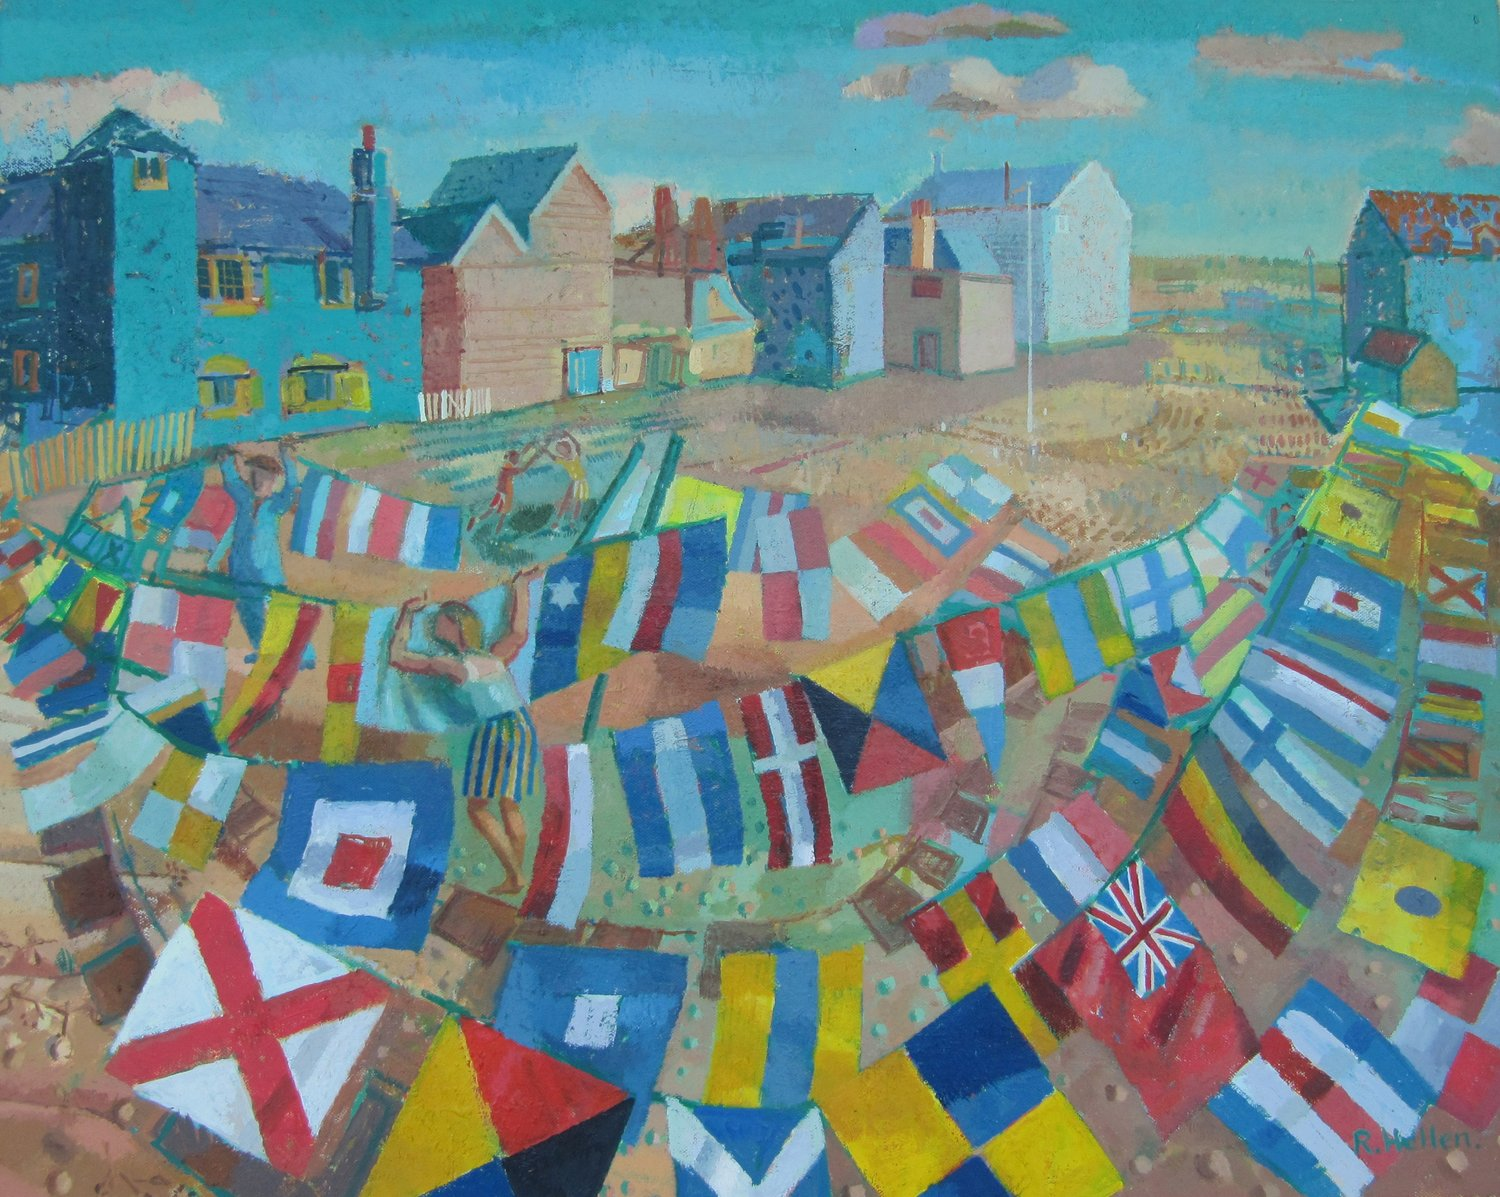 'Drying Flags on the Foreshore, Rye, Sussex', Ronald Hellen, Oil, 61 x 77 x 3 cm